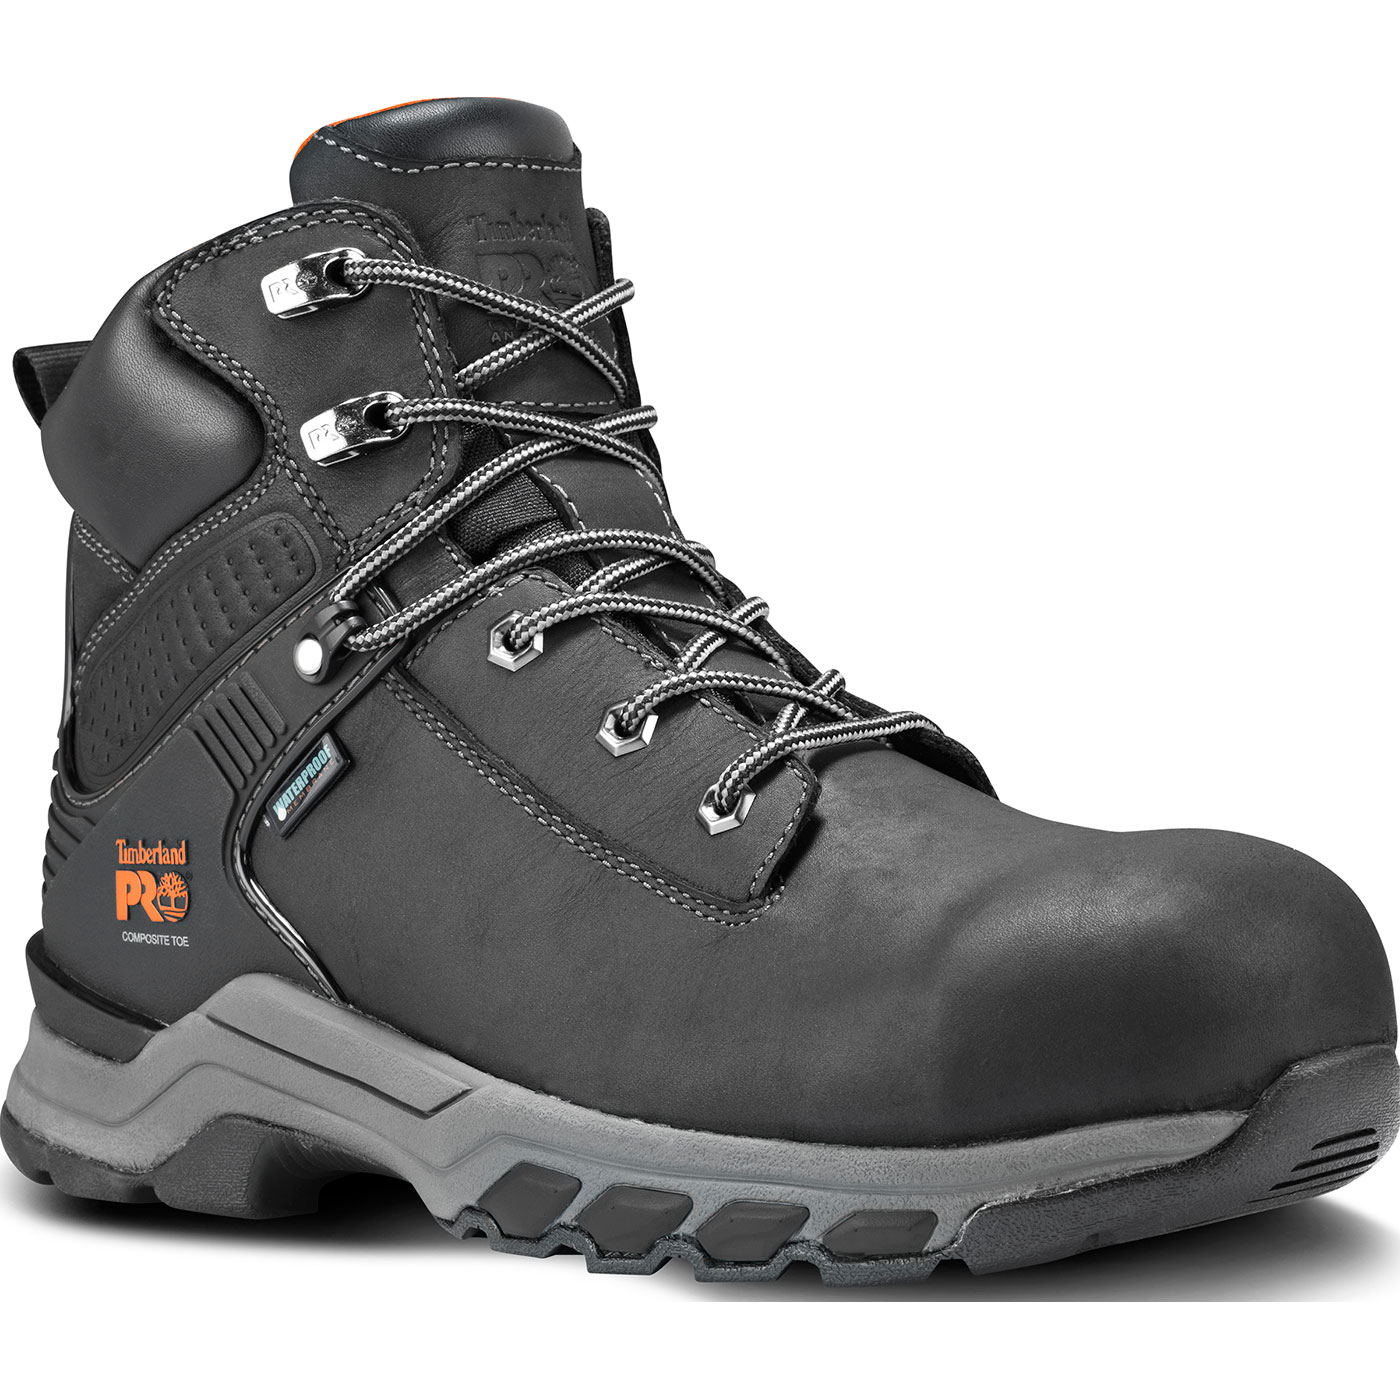 2f5110fdccb Timberland PRO Hypercharge Men's 6 inch Composite Toe Waterproof Leather  Work Hiker